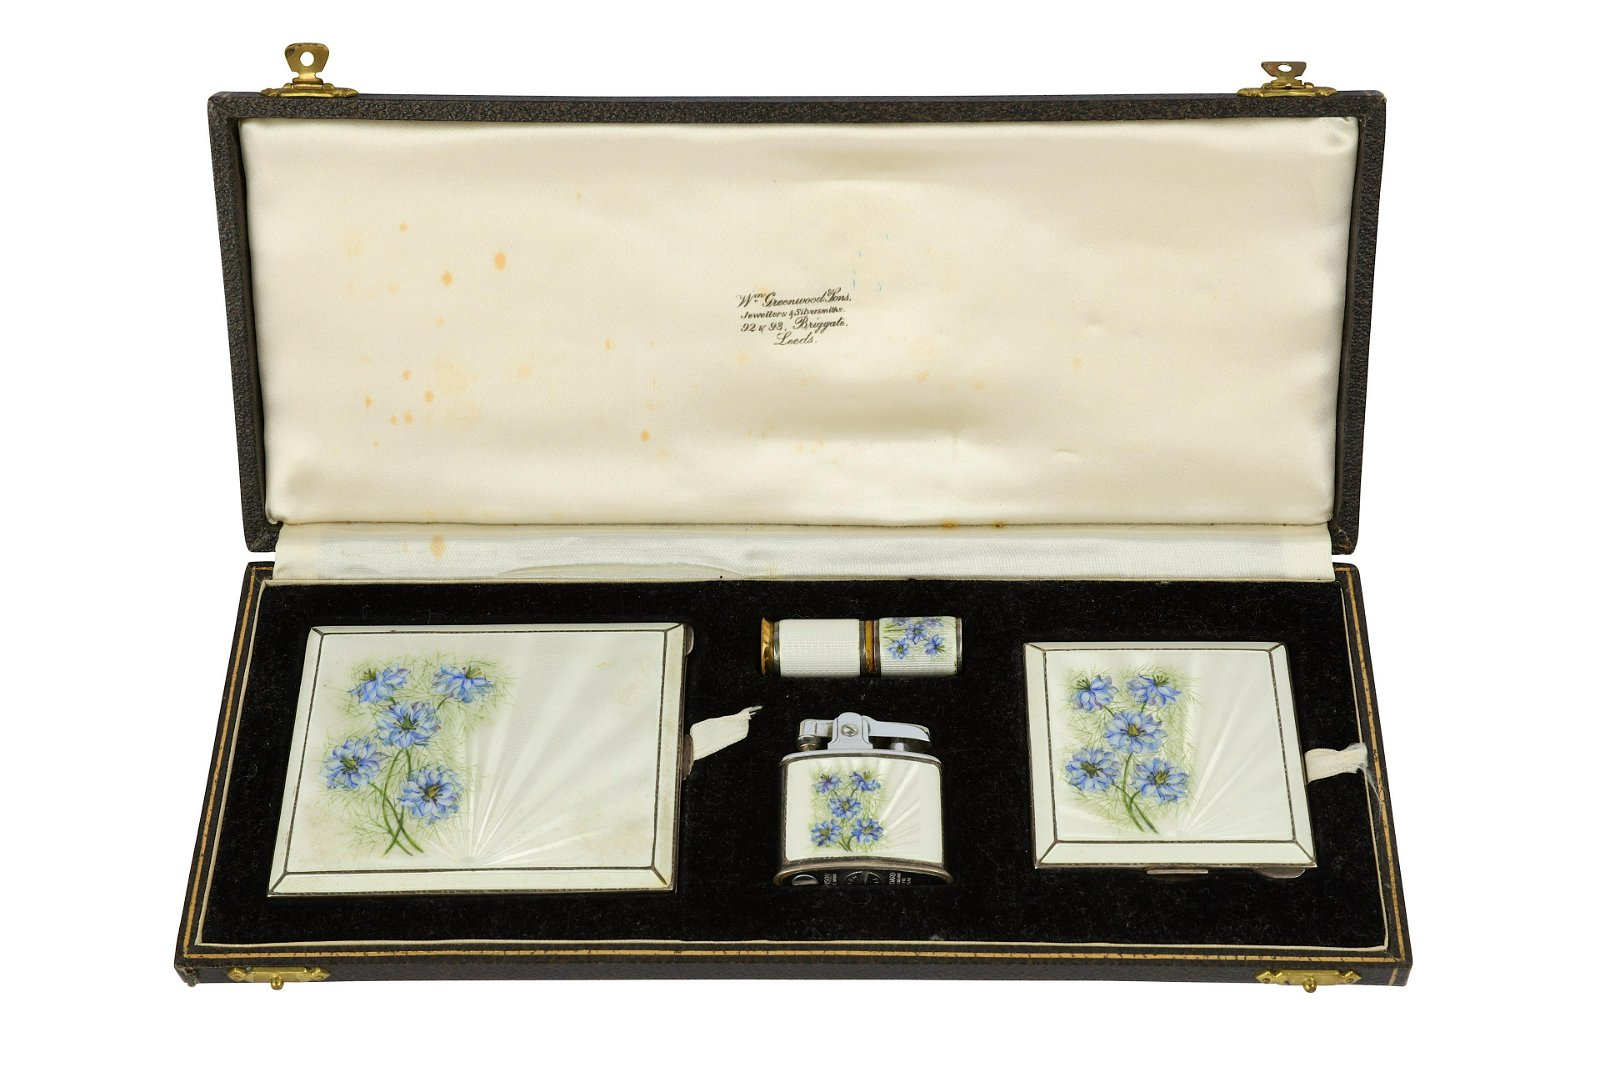 A cased George VI sterling silver and guilloche enamel